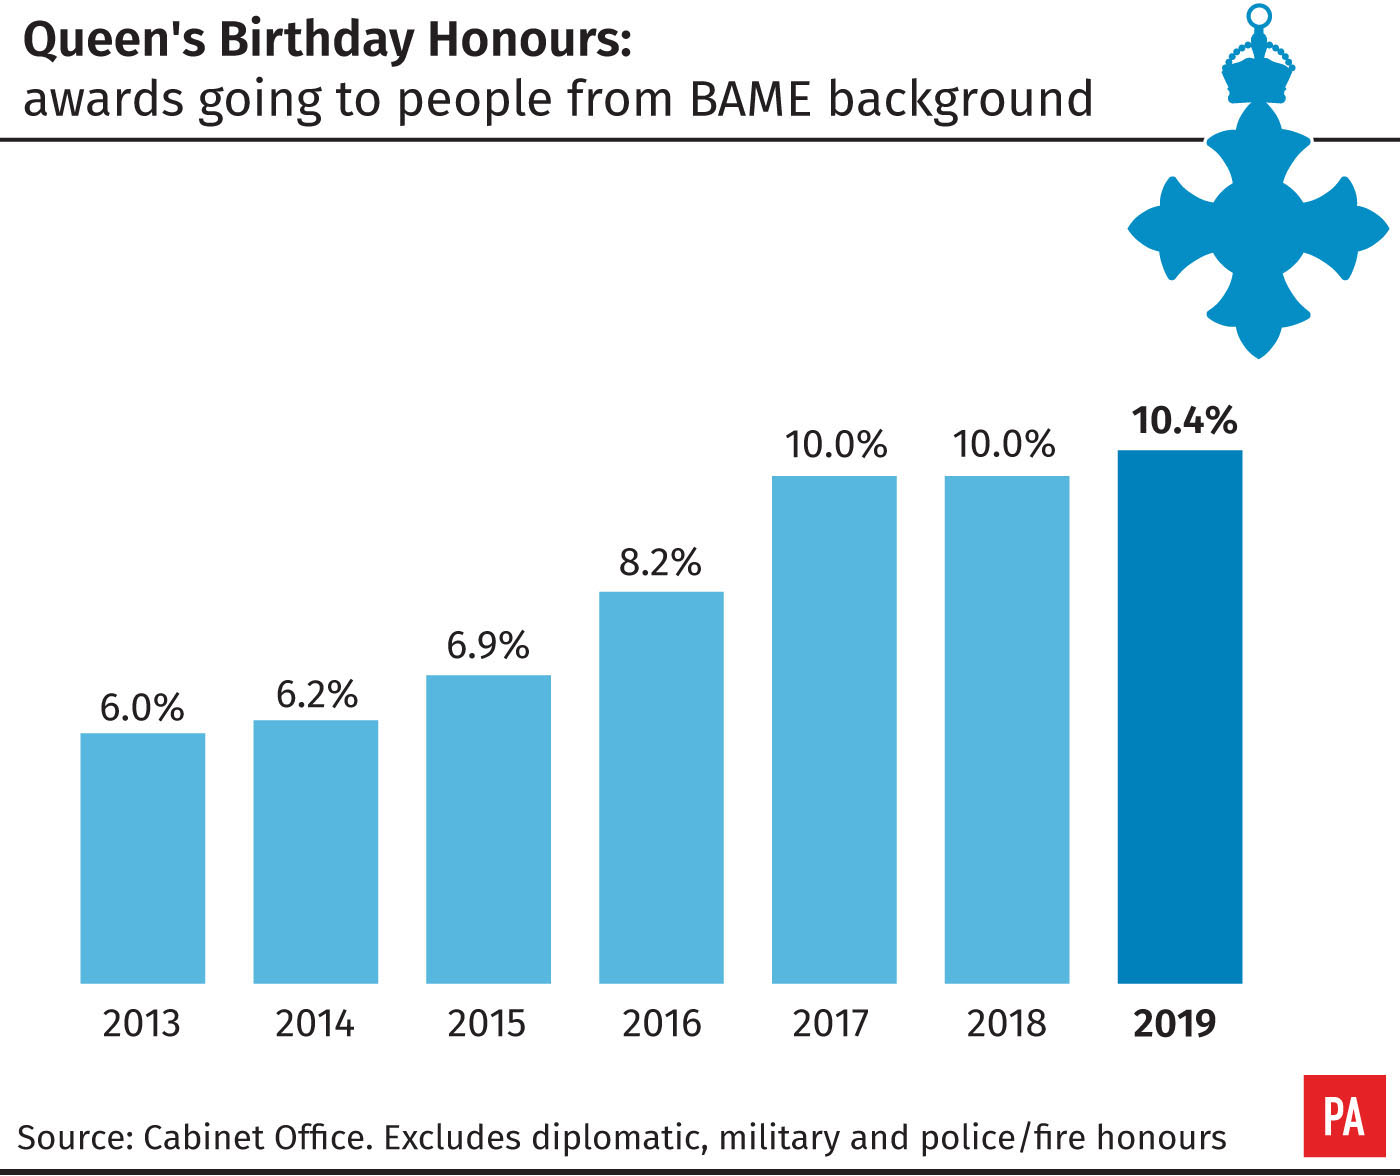 Queen's Birthday Honours, awards going to people from BAME backgrounds